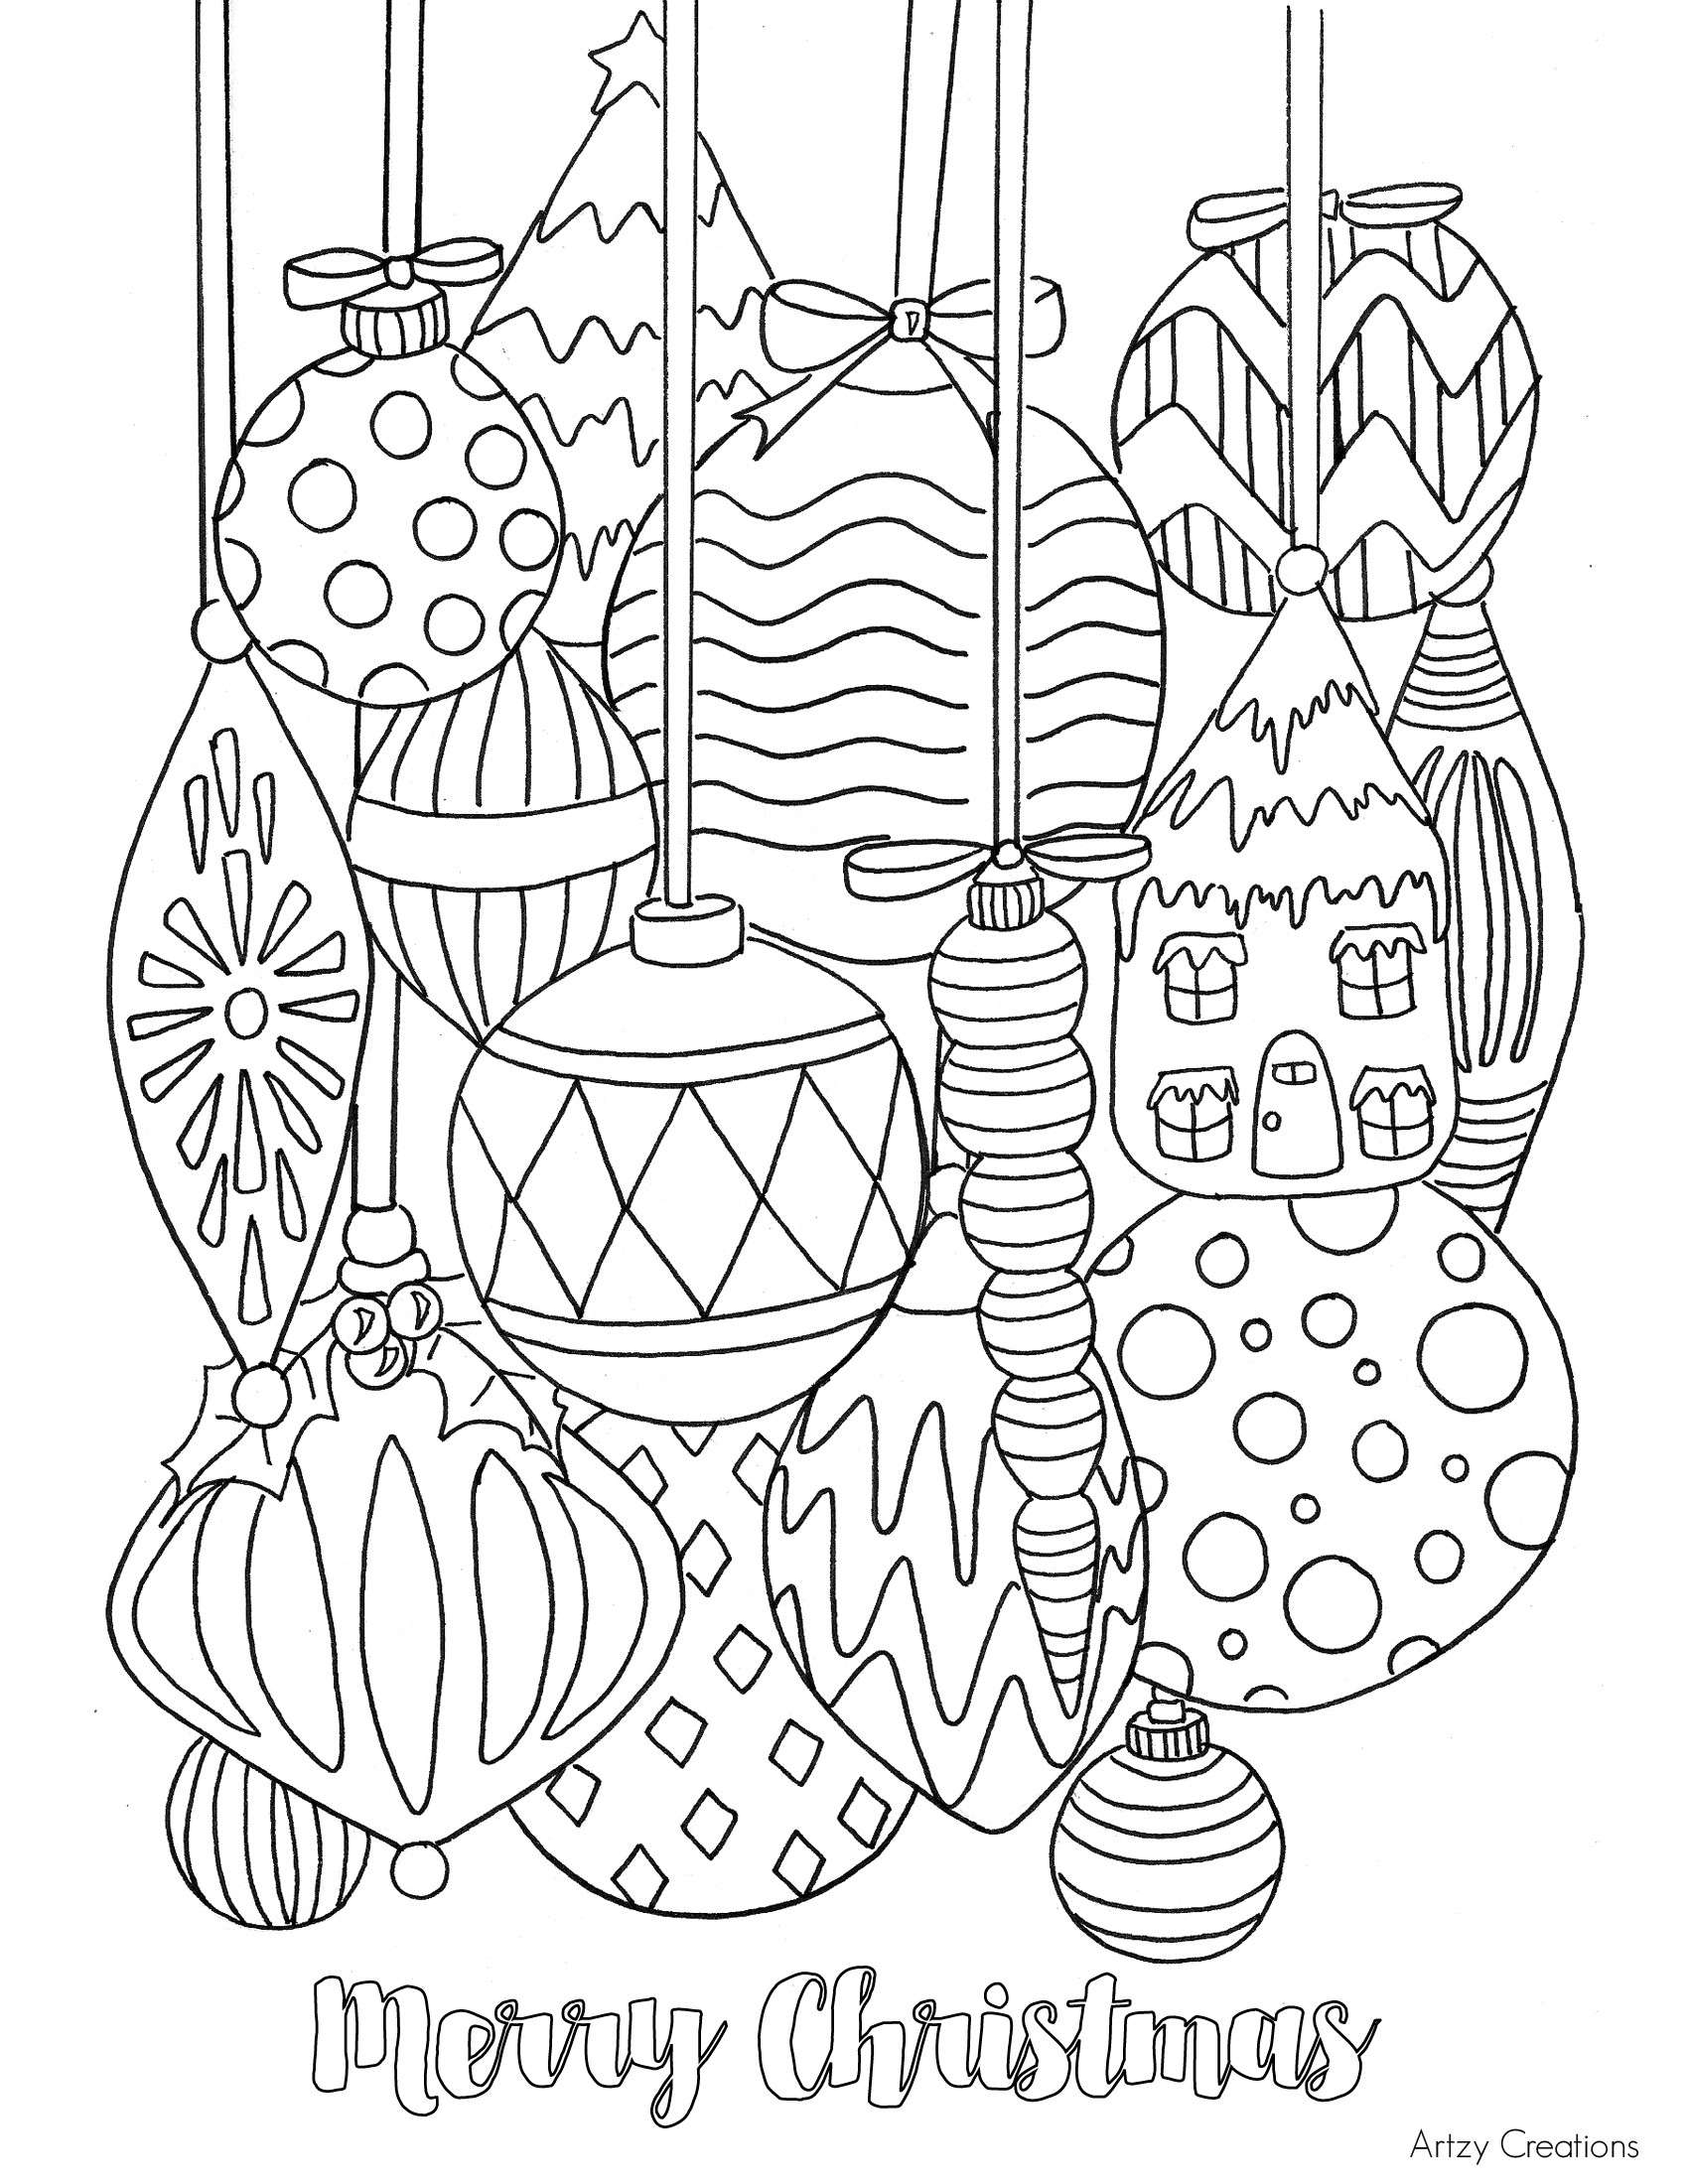 Christmas Card Coloring Sheets With Pages Printable Preschool